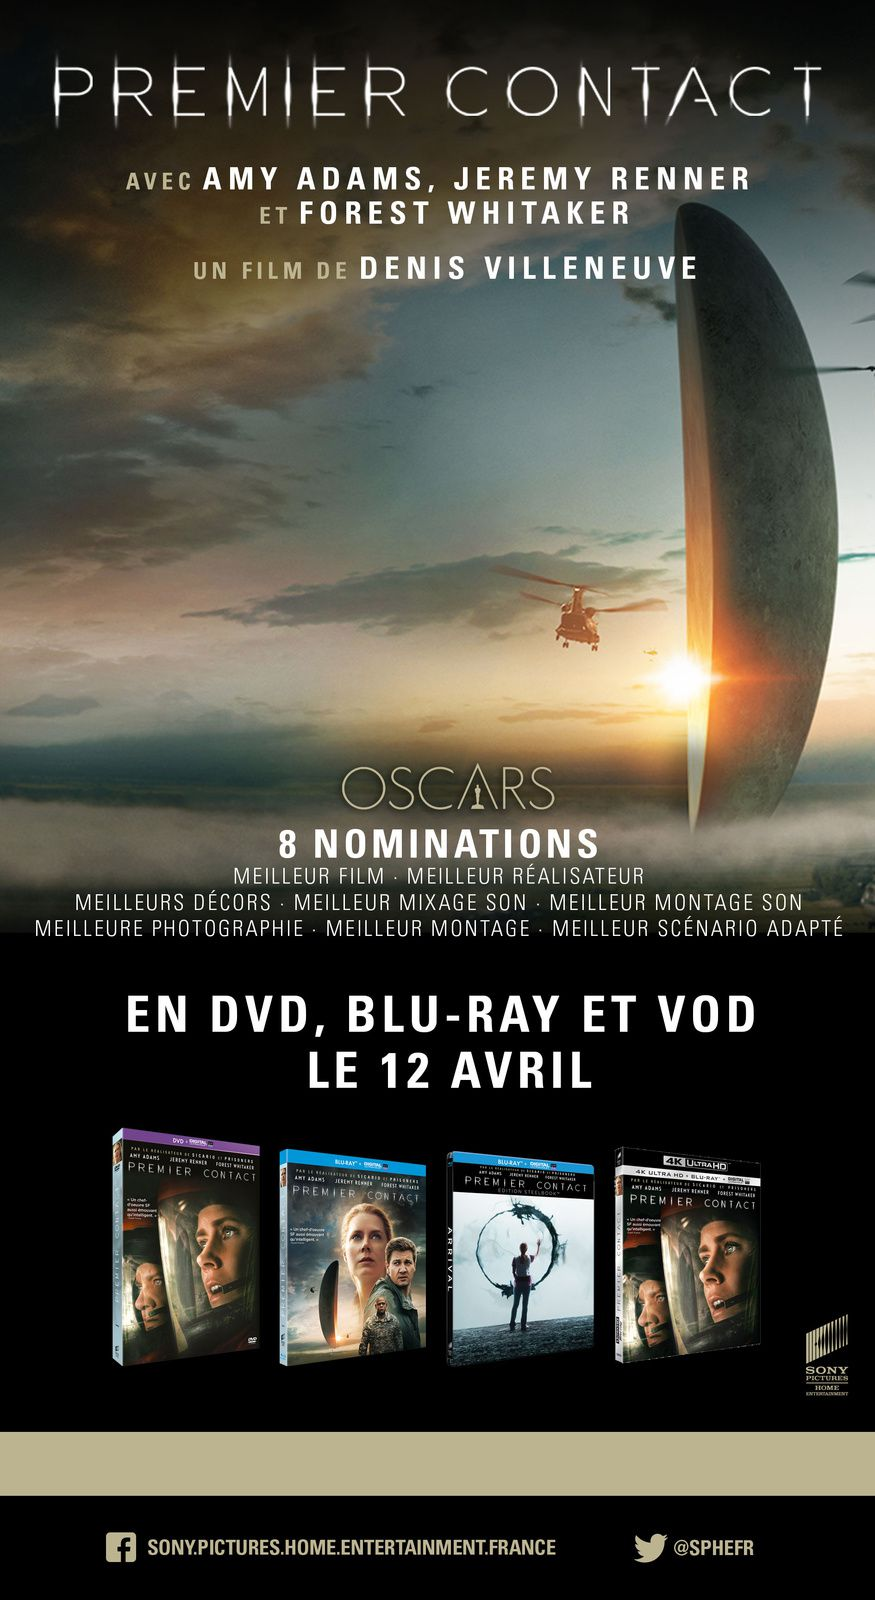 PREMIER CONTACT en DVD, BLU-RAY et VOD le 12 avril 2017 chez Sony Pictures Home Entertainment